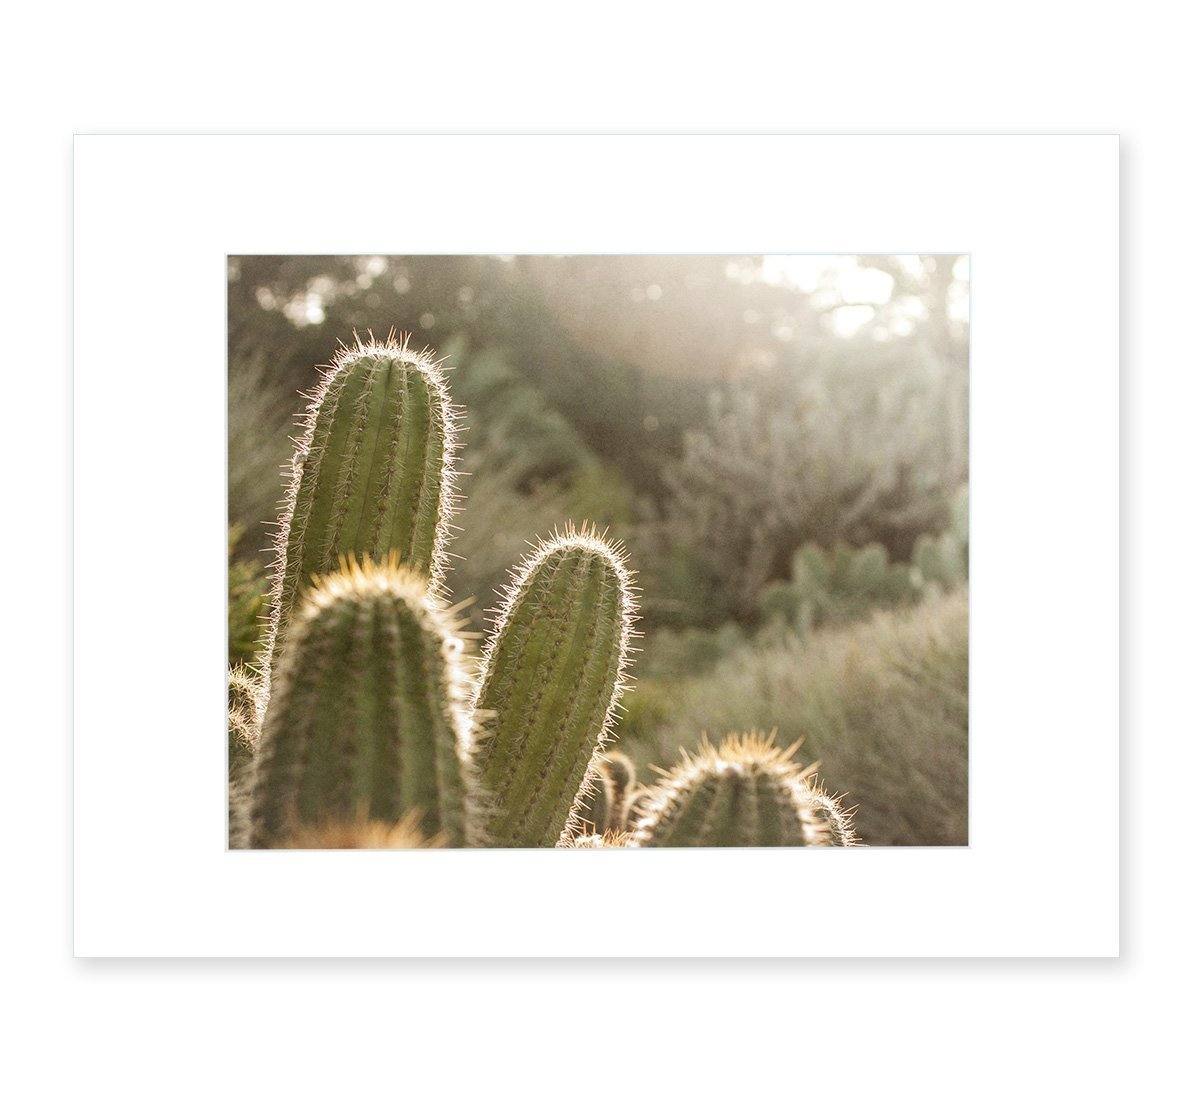 Cactus Wall Art, Botanical Desert Picture, 8x10 Matted Photographic Print (fits 11x14 frame), 'Desert Sunset'